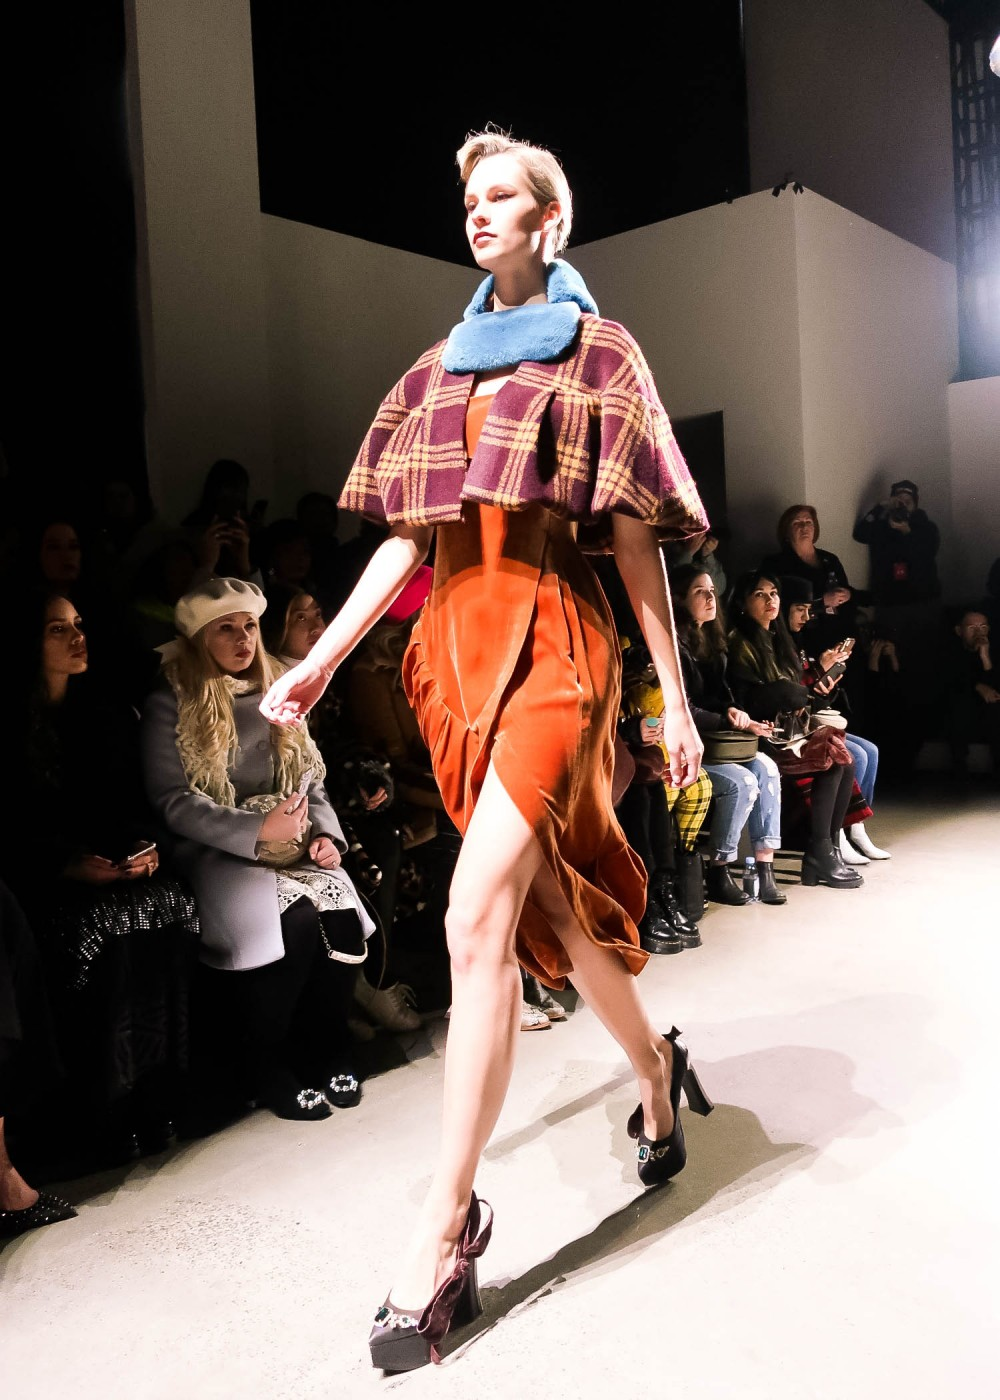 Sharing my NYFW Dairy FW19 Day 3 Today on Have Need Want! Click on the photo to check out what I did from attending Custo Barcelona and Son Jung Wan's shows to an event with Elle. #NYFW #NYFWDiary #SonJungWan #FrontRow #RunwayShow Photo Credit: Fashion Should be Fun!